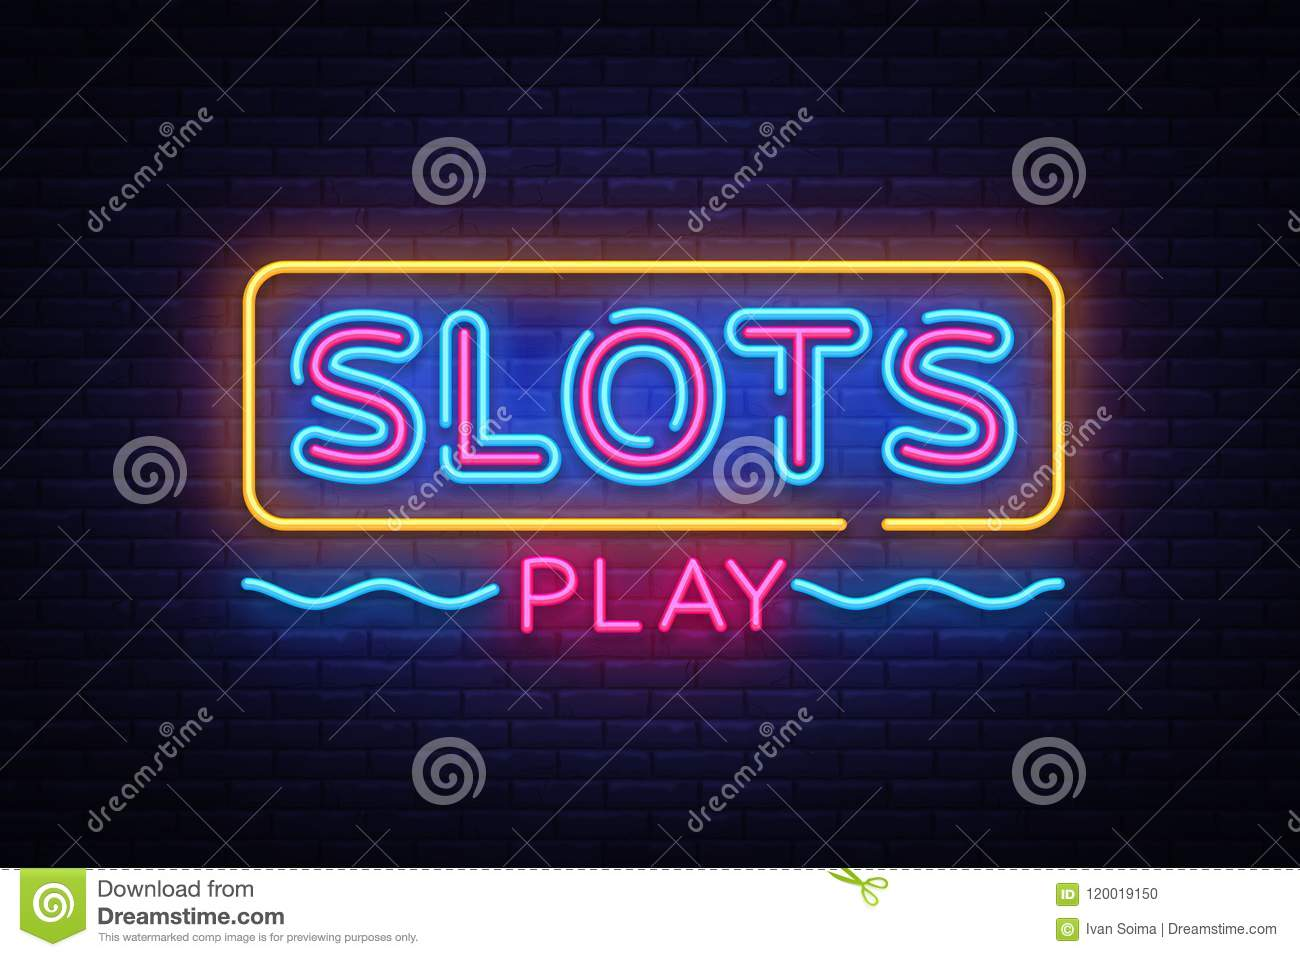 Slots Play neon sign vector. Slot Machine Design template neon sign, light banner, neon signboard, nightly bright